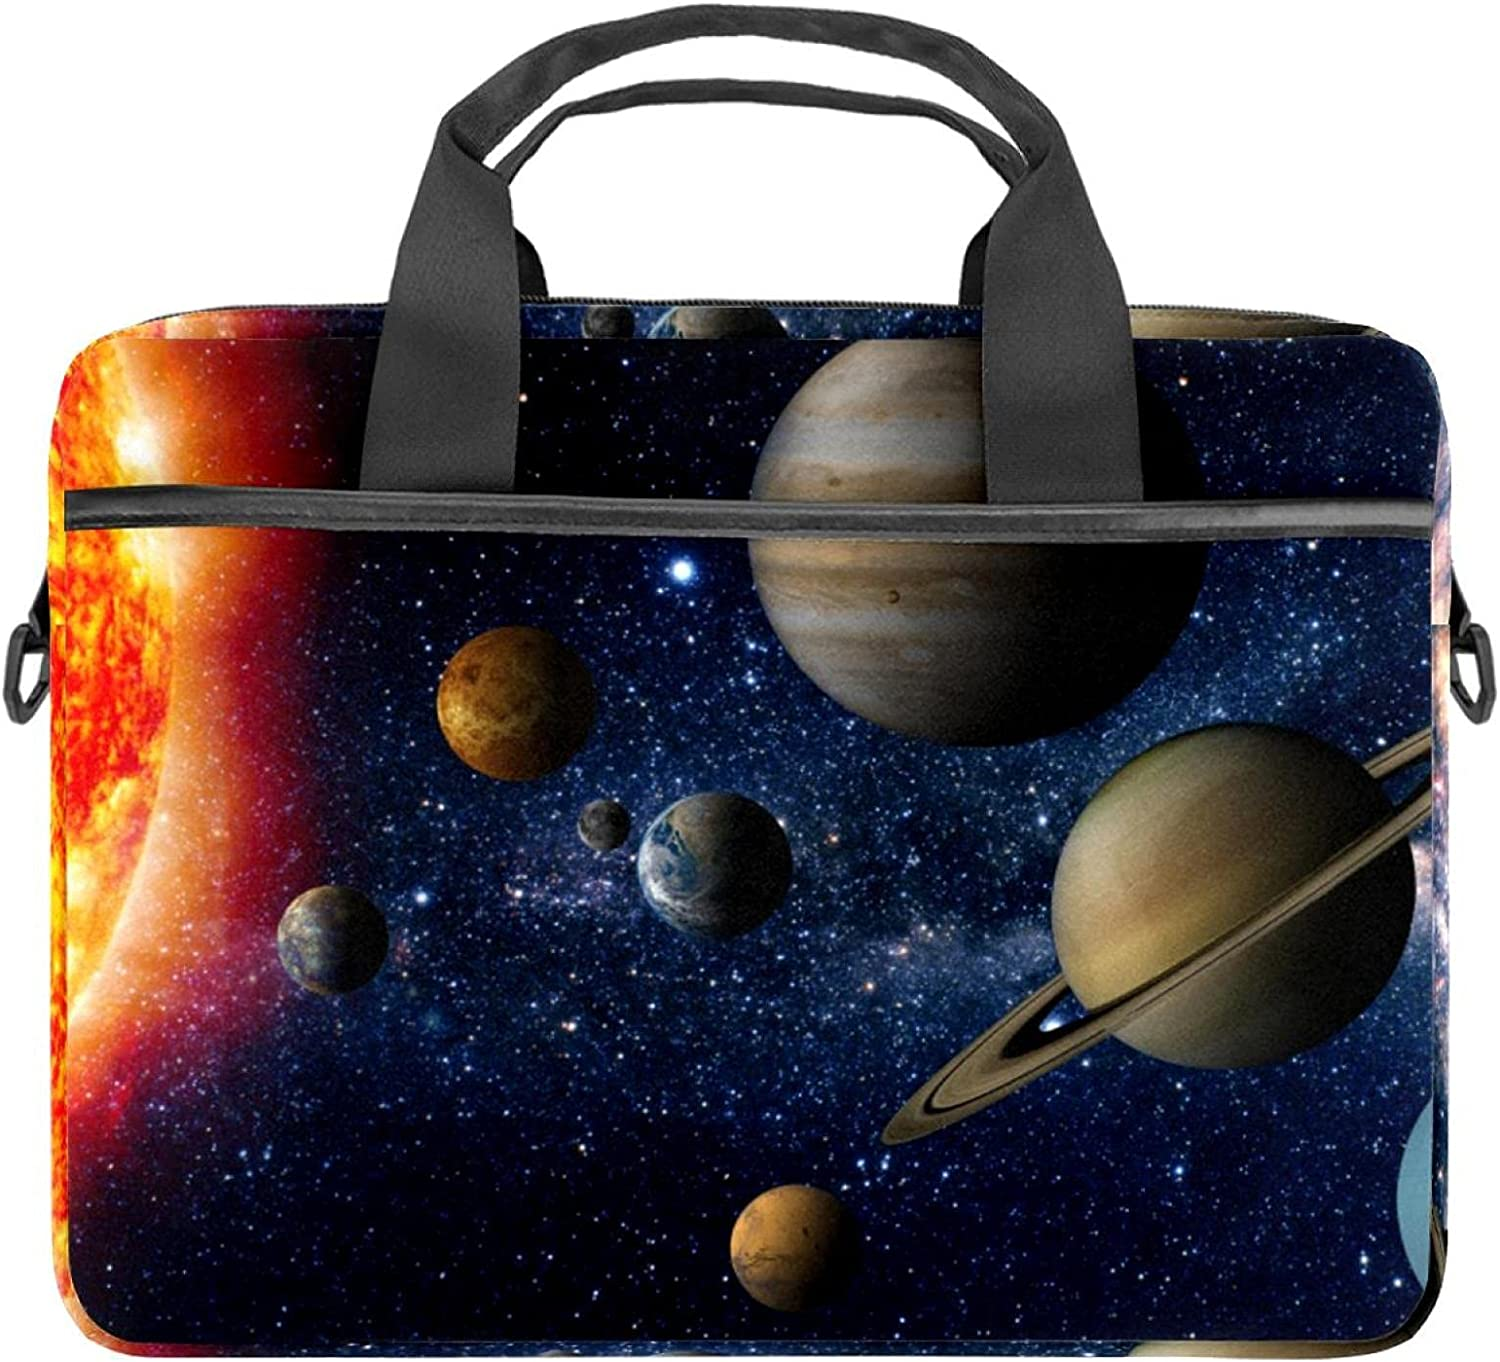 Outer Space Galaxy 2 Special price for a Spring new work limited time Laptop Messenger Case Shoulder Bag Sleeve